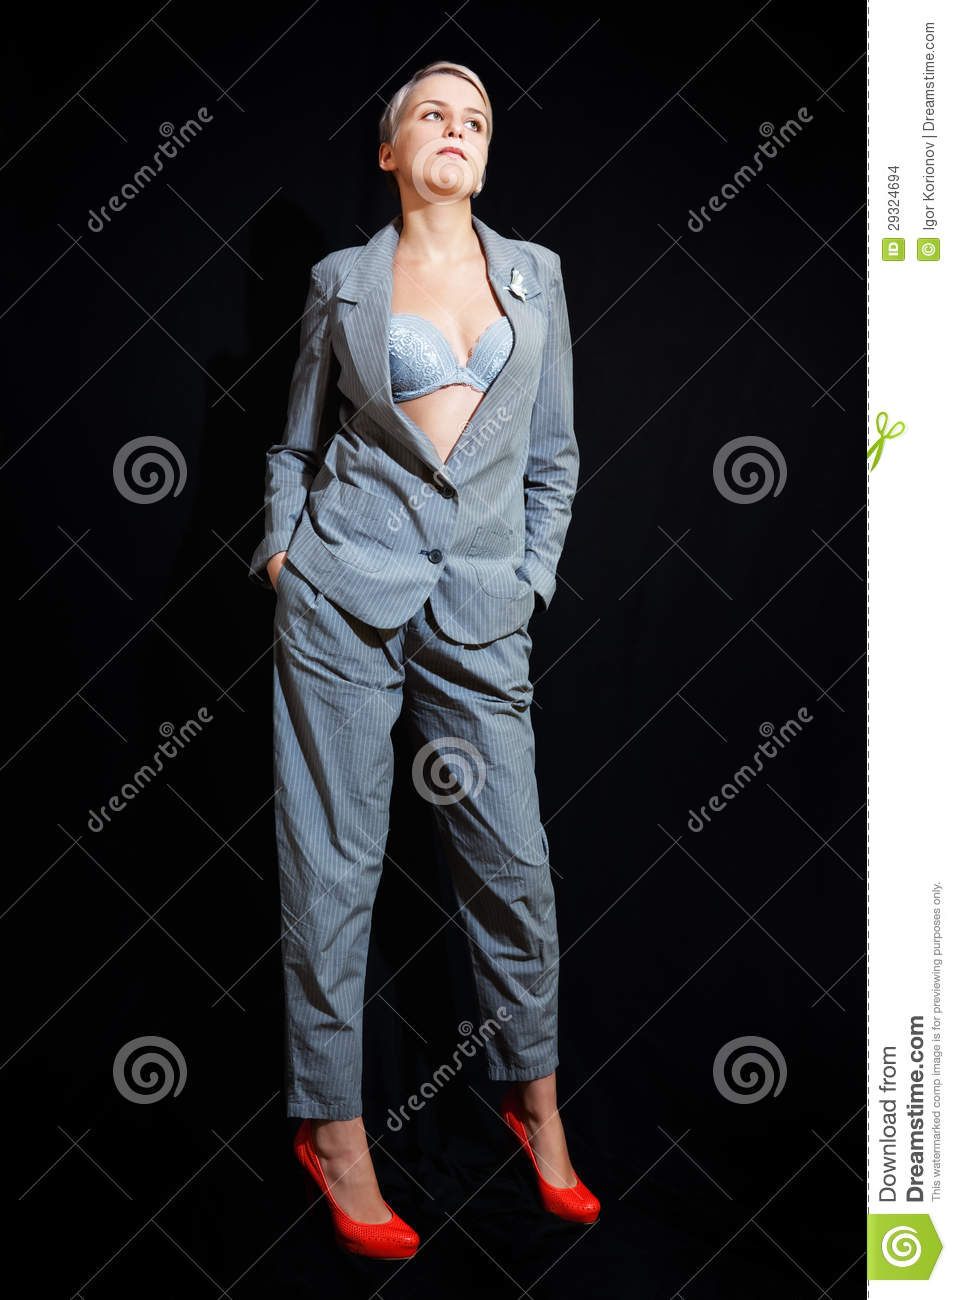 Young Woman In Suit And Bra On Black Background Stock